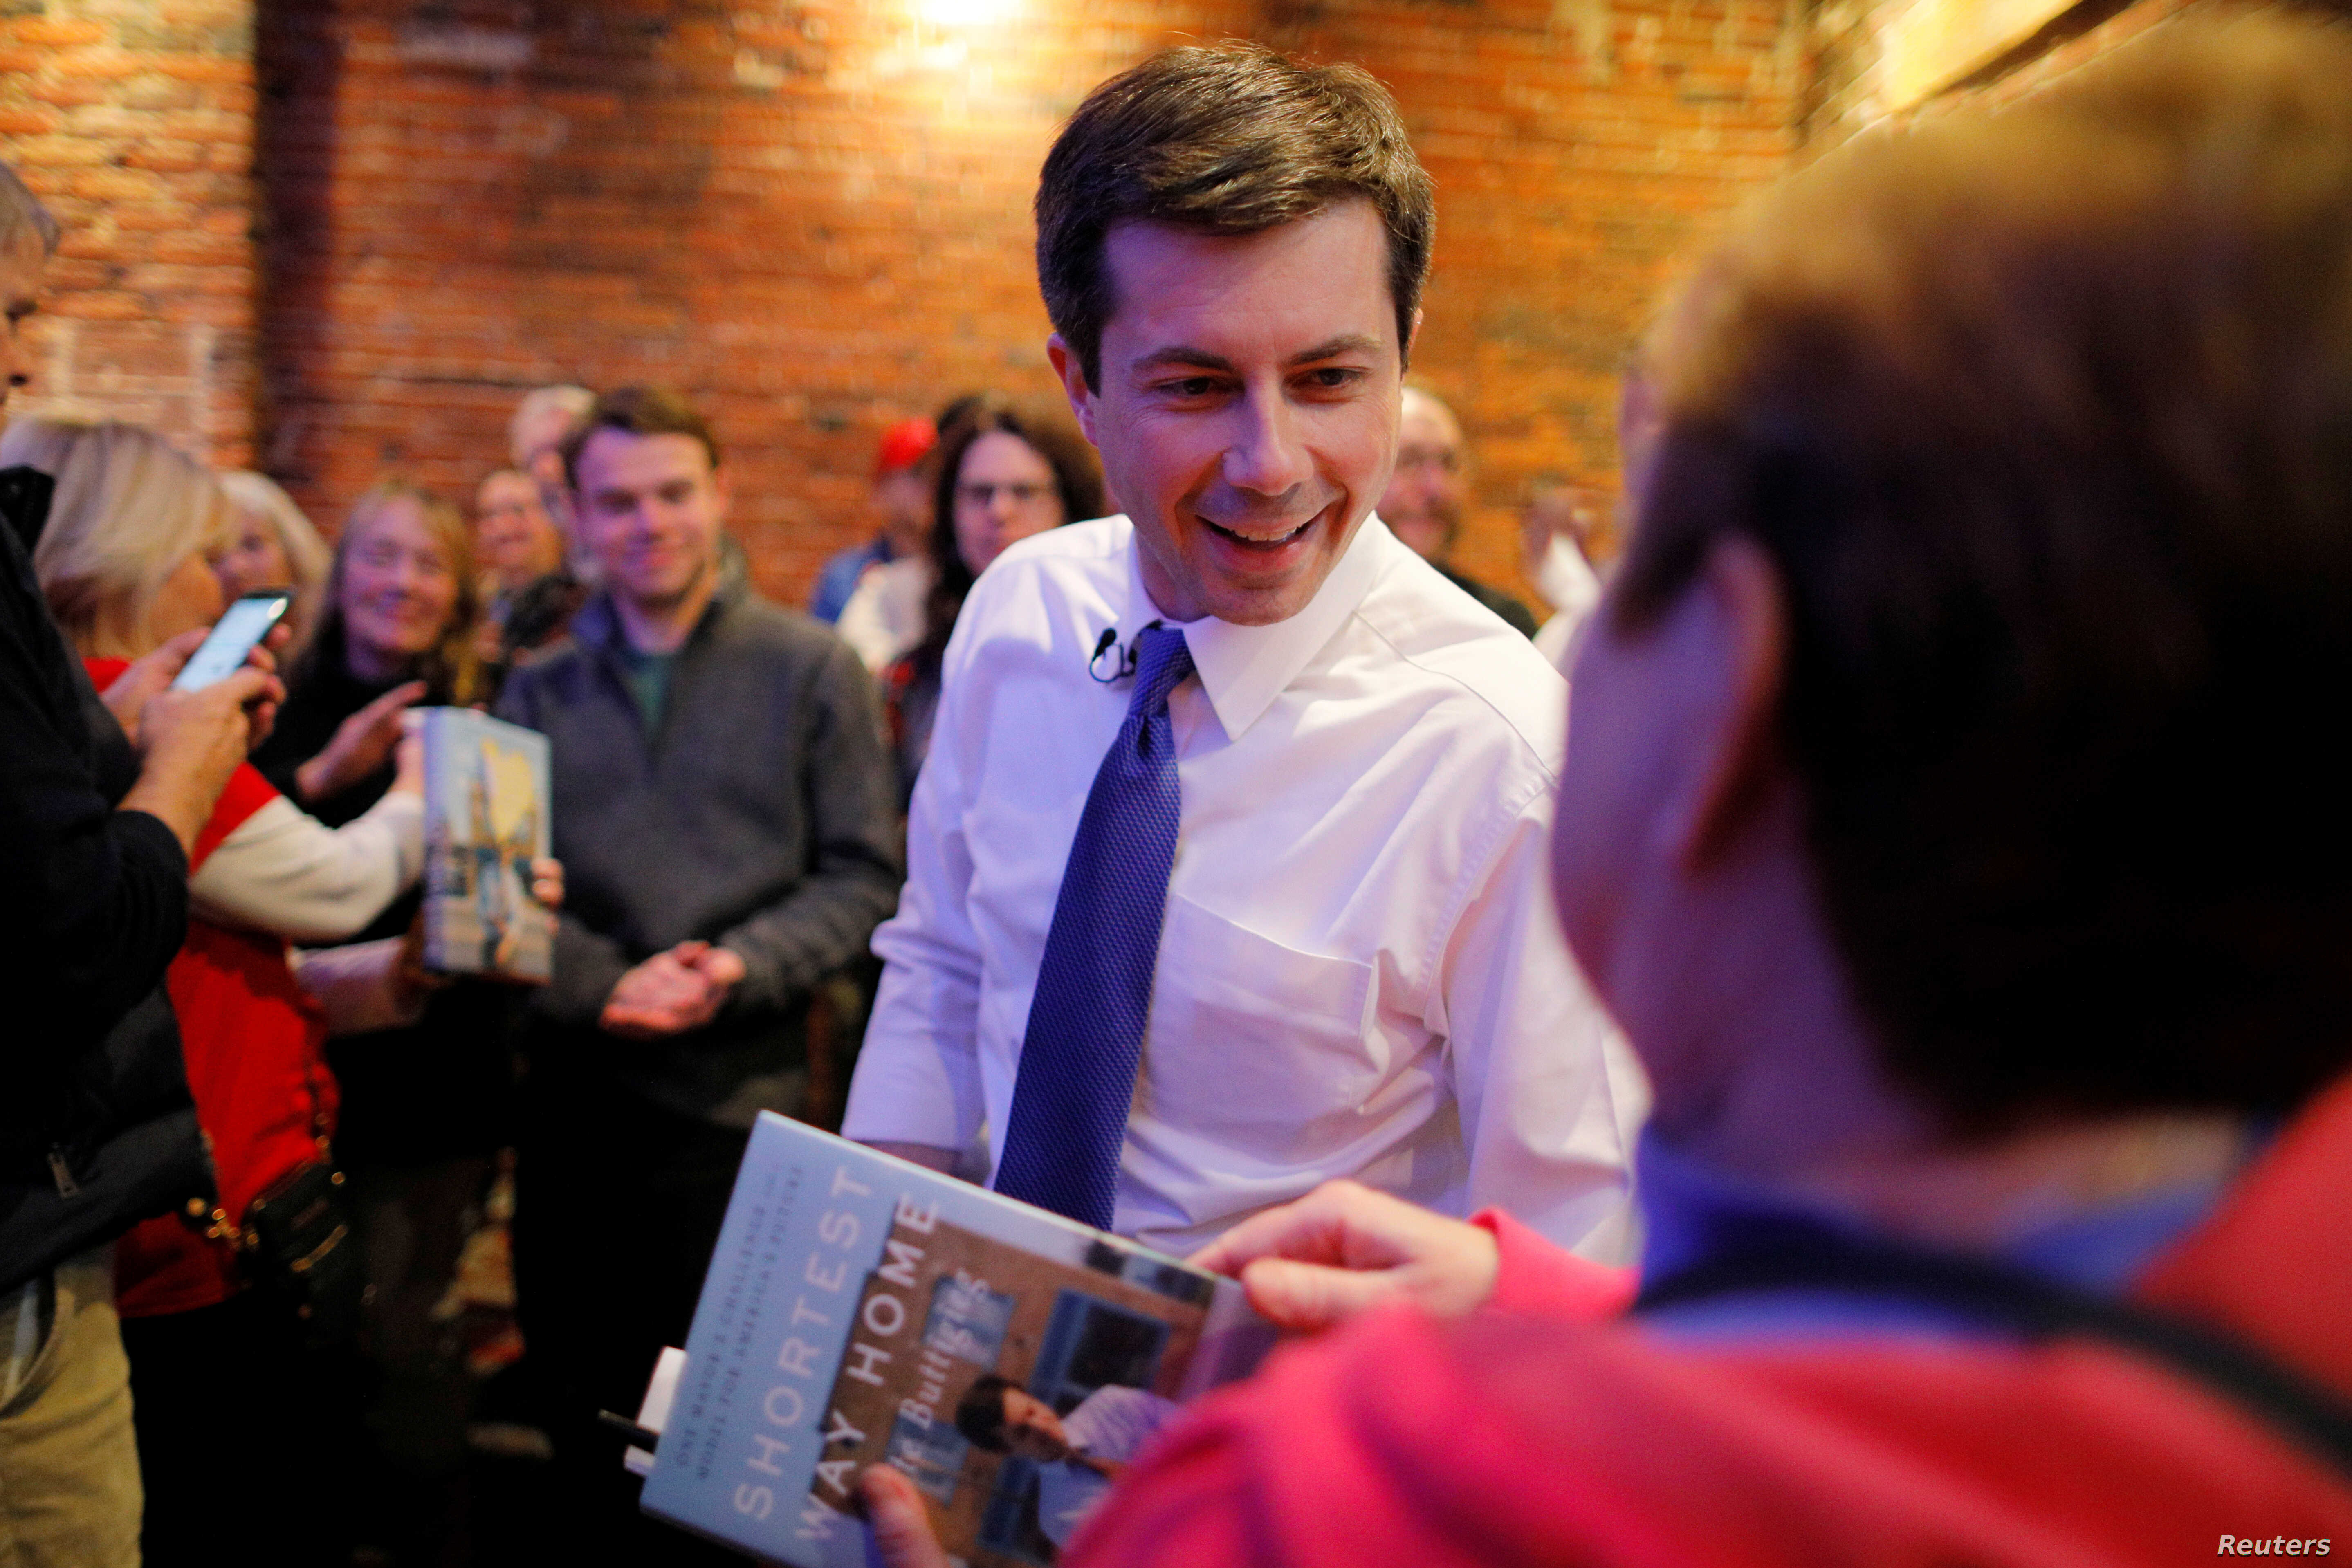 A 37-Year-Old Indiana Mayor is Surging in the Democratic